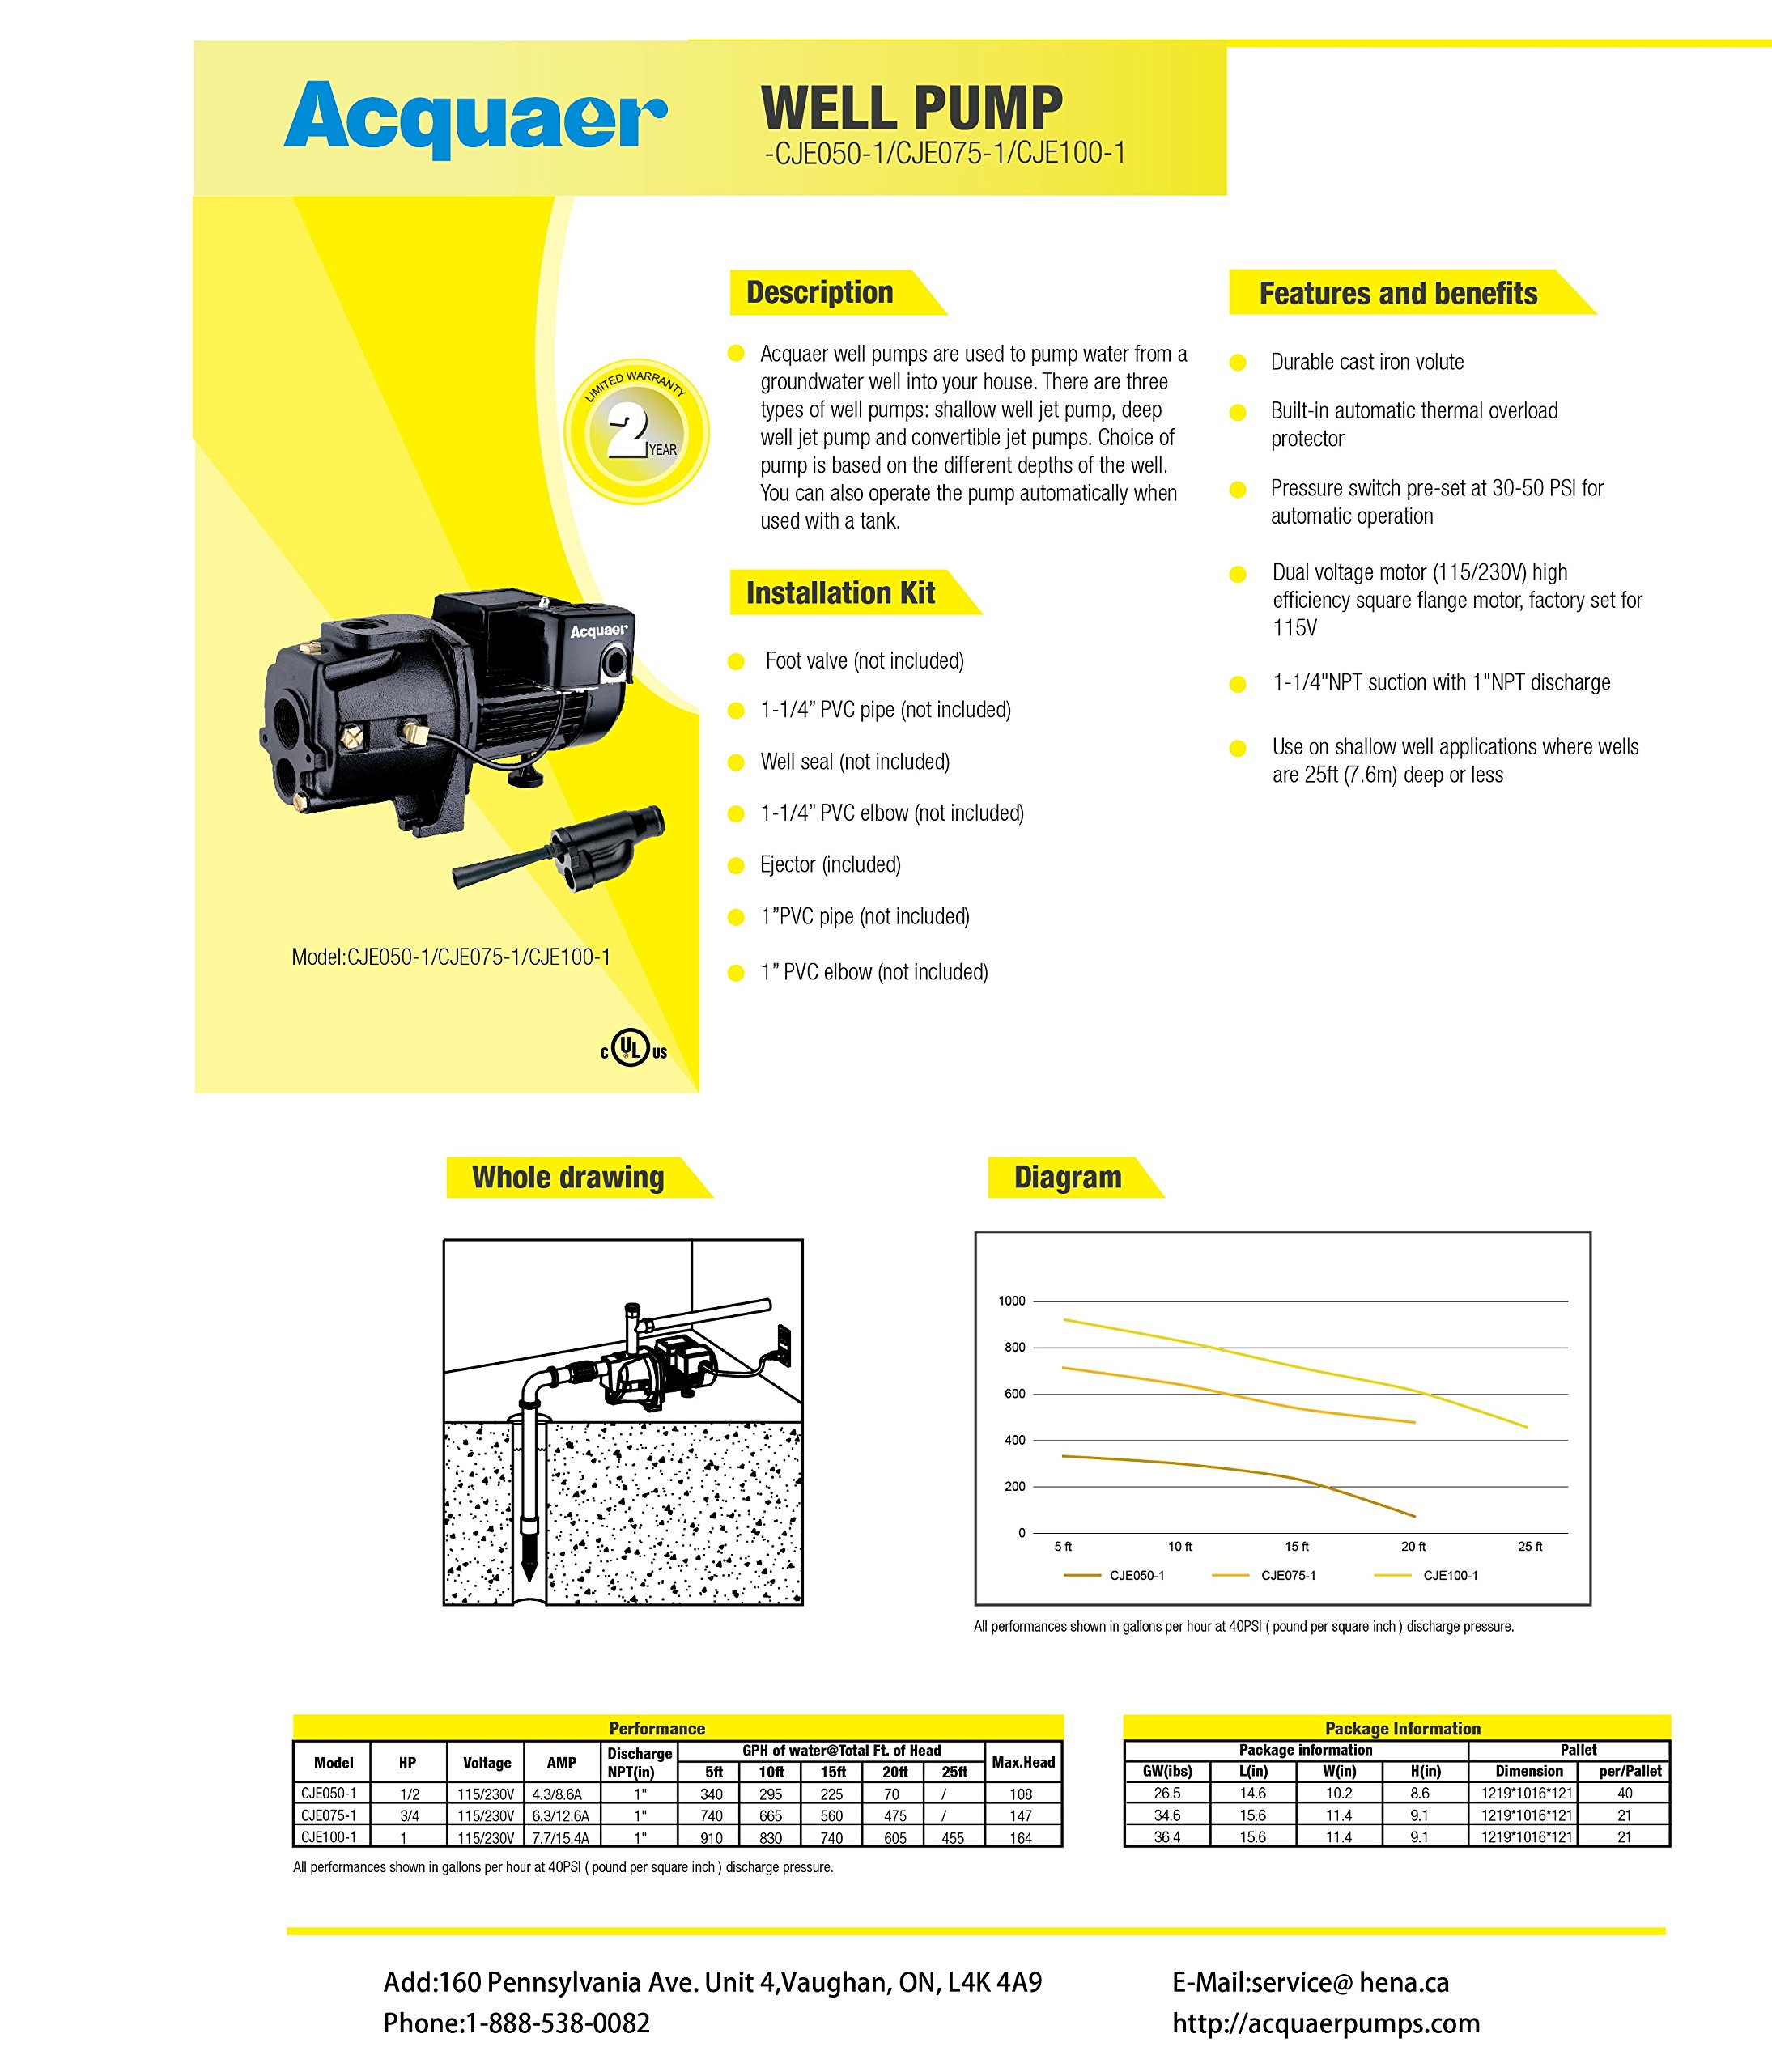 Acquaer 1 HP Dual-Voltage Durable Cast iron Convertible Deep WellJet Pump With Injector kit by Acquaer